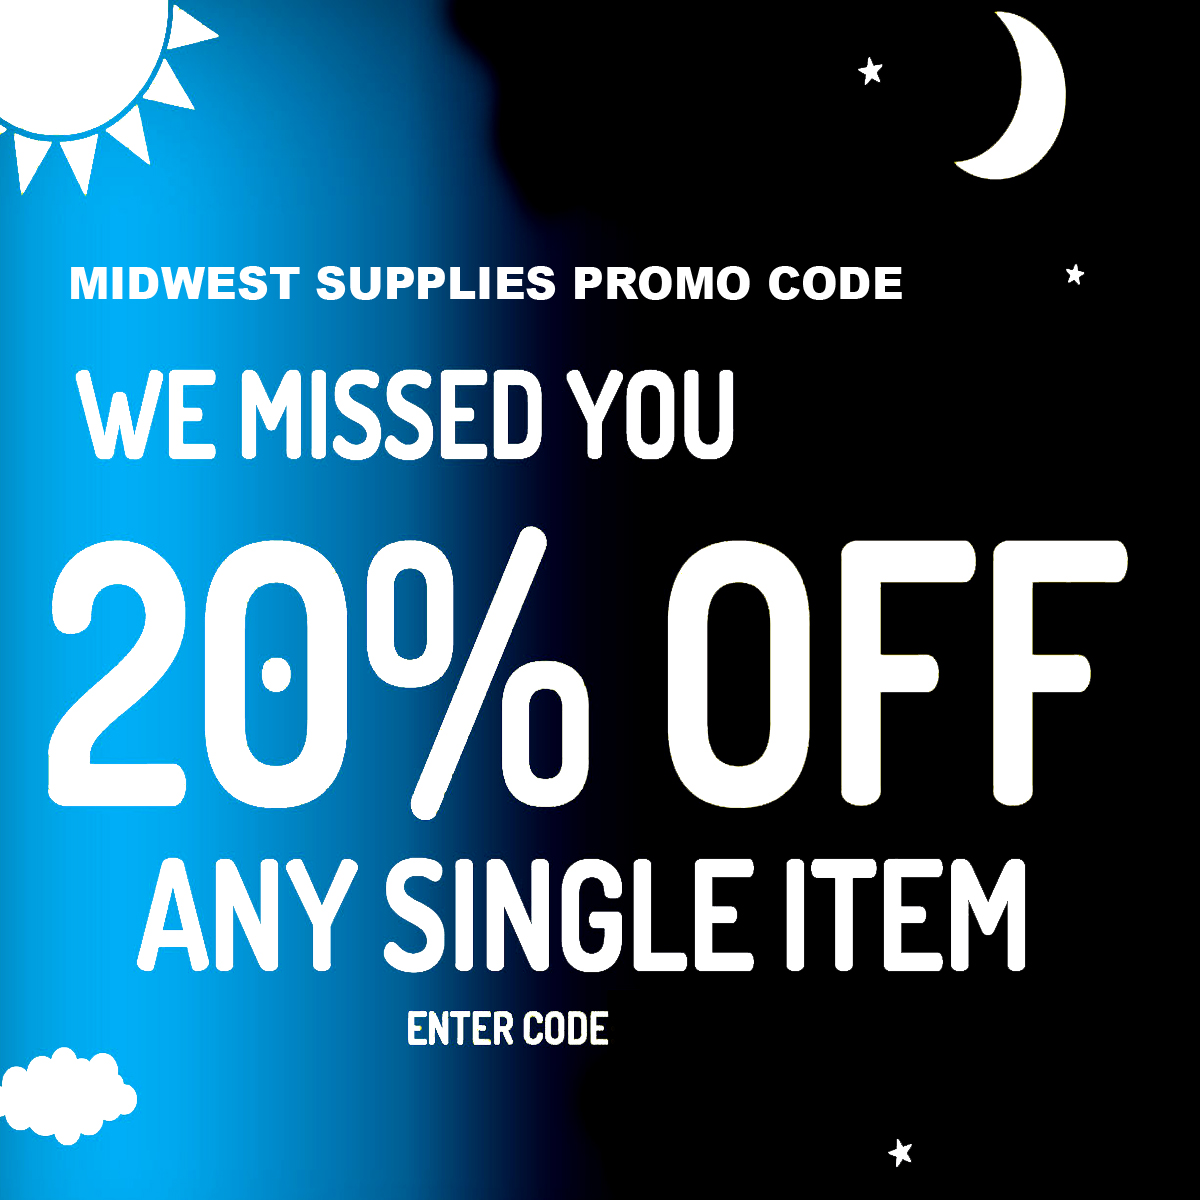 Midwest Supplies Save 20% On A Single Item With This MidwestSupplies.com Promo Code Coupon Code